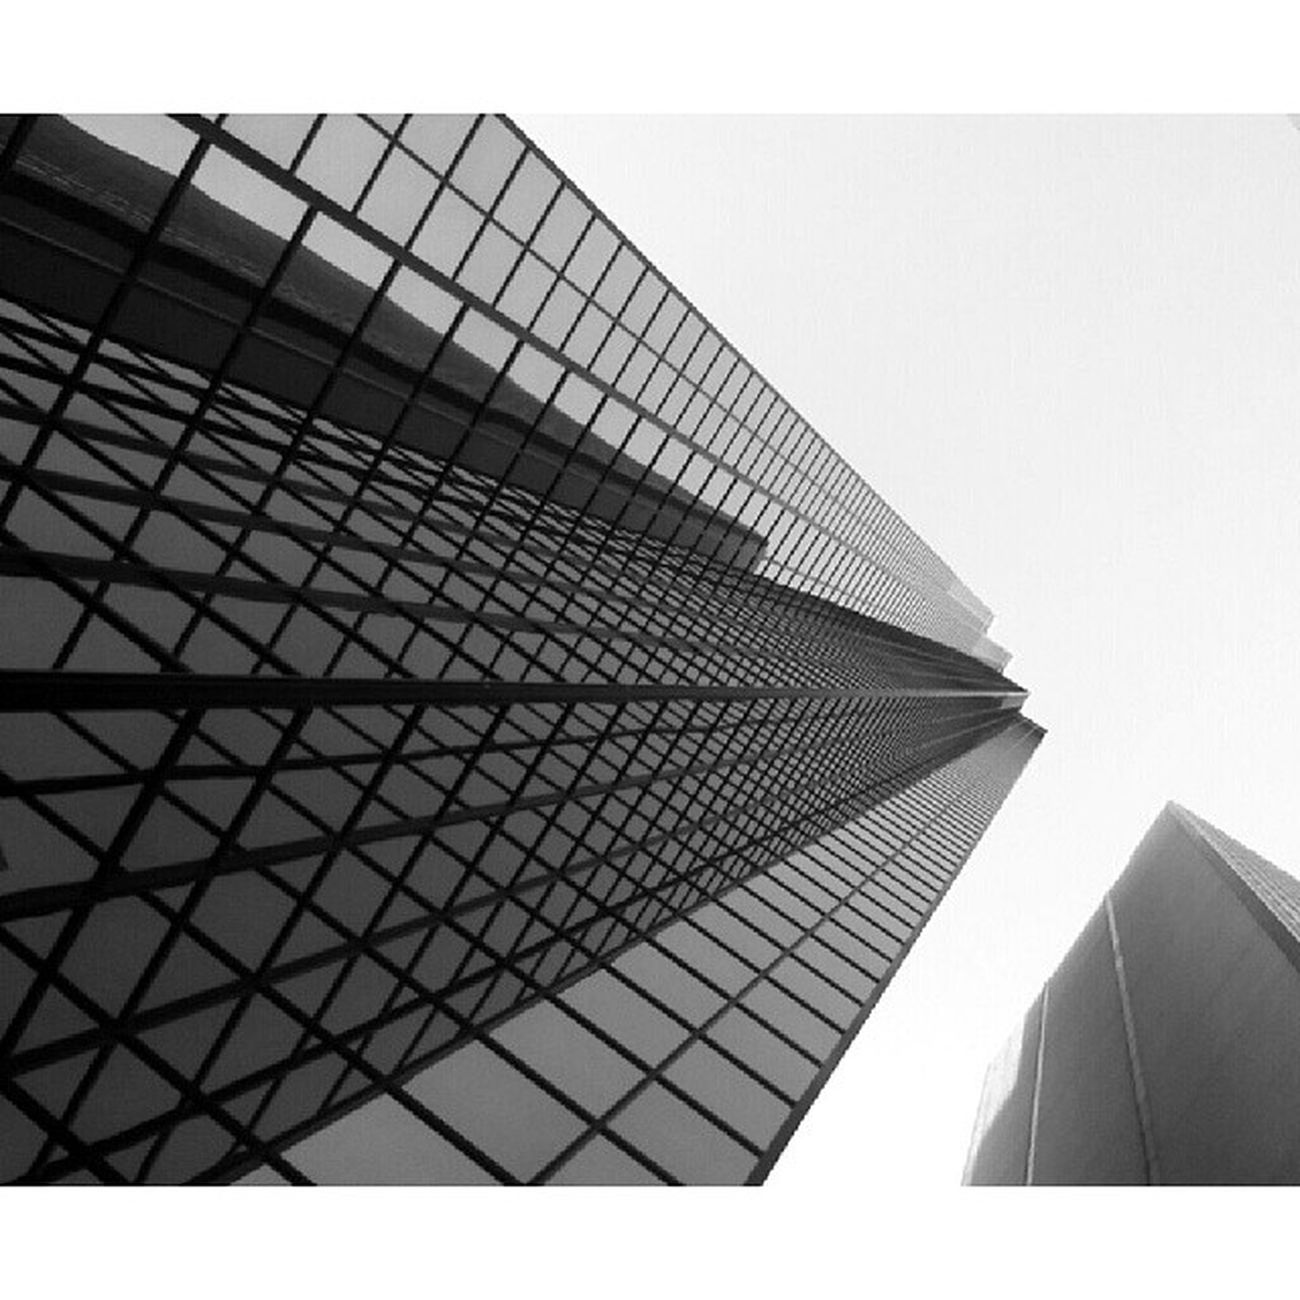 Thanksgiving tower in DownTownDallas , from Worldwide Instameet 8, hosted in Dallas by @instadfw Wwim8 Socalitydallas So7district instameetsarebiggerintexas wearetxgmers 9finds irox__bw bw_rv bwstyles_gf rsa_light rsa_windows rsa_doorsandwindows iloveDallas lookupclub bnw_zone bnw_captures worldcaptures mafia_bwlove ig_cameras_united icu_bw igworldclub rustlord_blacknwhite